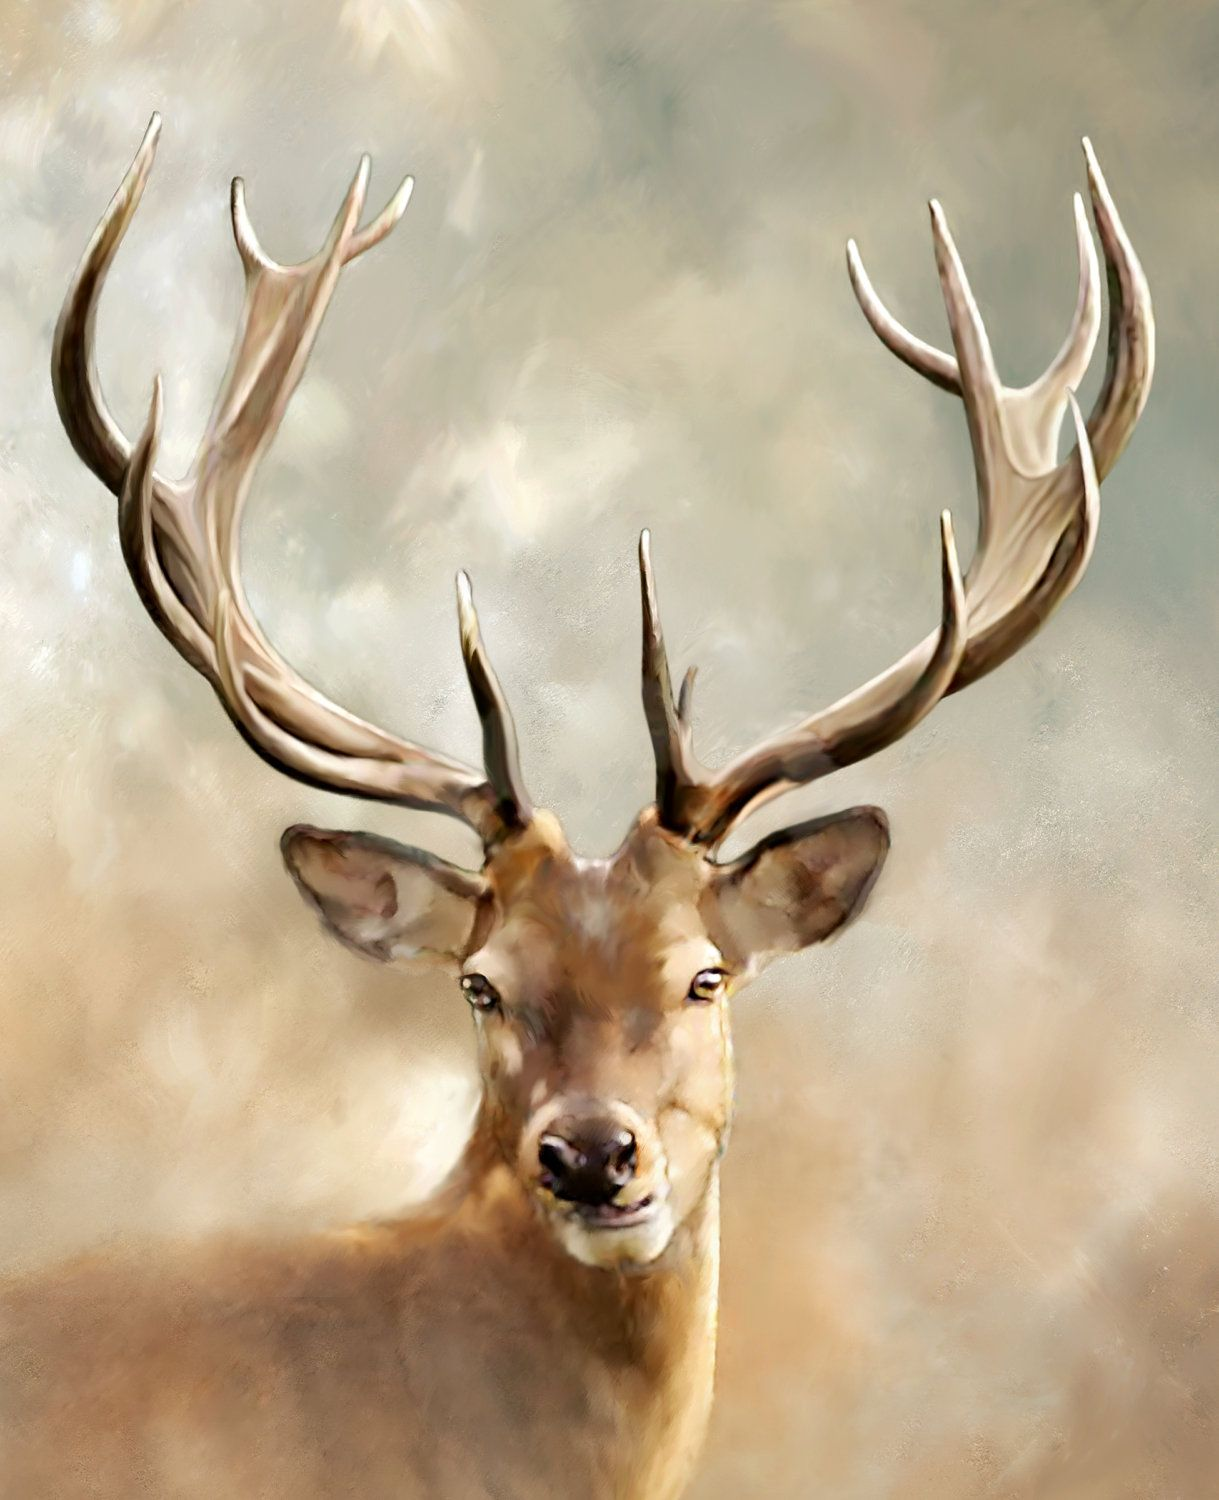 Items similar to Giclee Print, Photograph, Animal Photography, Deer  Photograph, Antlers, 8x10, Tan and Grey, Nature, Masculine, Hunting on Etsy